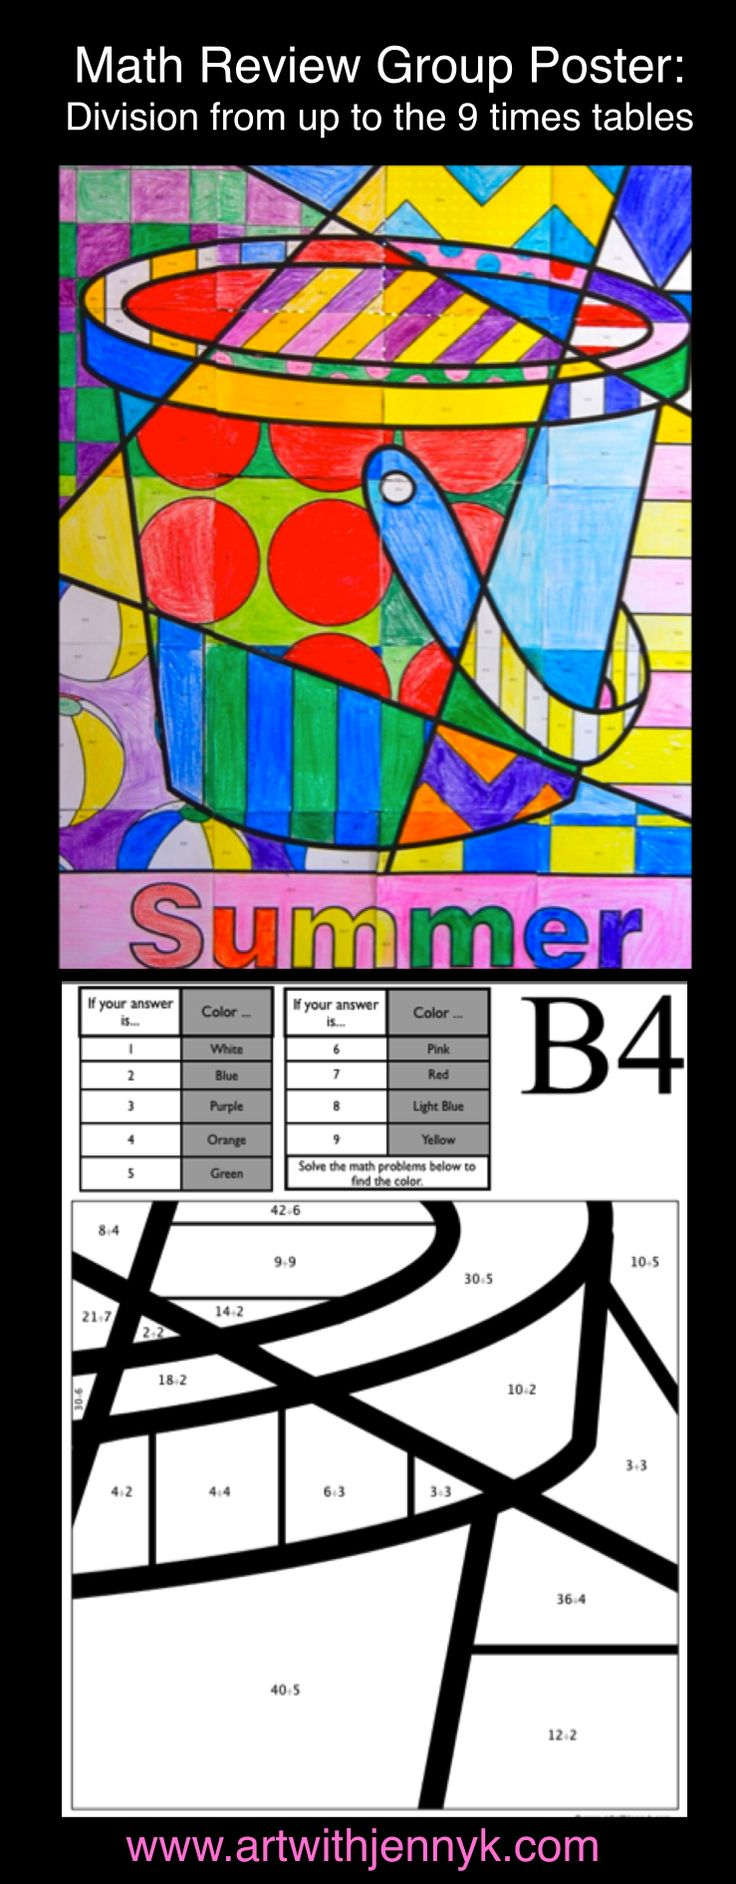 Use art to review math! The colors on every page of this large, classroom mosaic poster are assigned based on the answers to math problems written on each sheet. Division through the 9s times tables is reviewed on this poster. In the end you'll have a beautiful summer poster to display in your room or at your school!